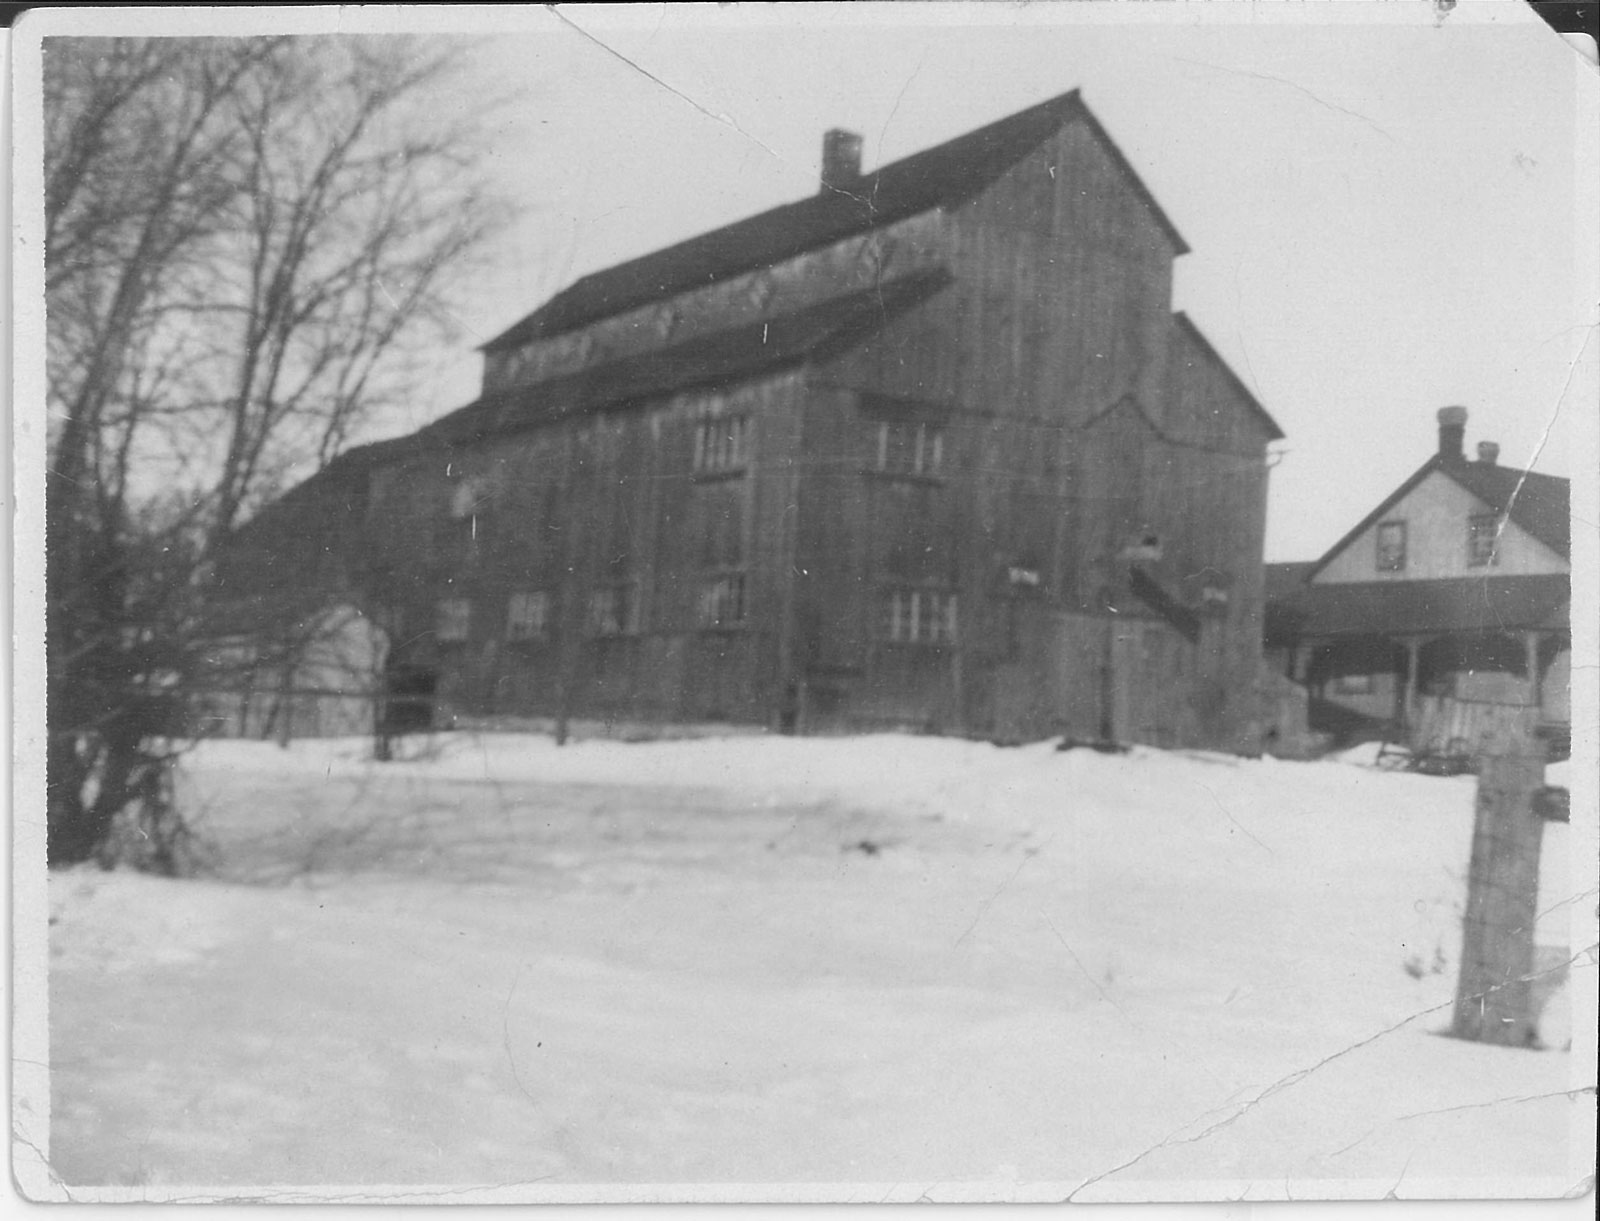 Old barn. Photo from the collection of Roger Young.